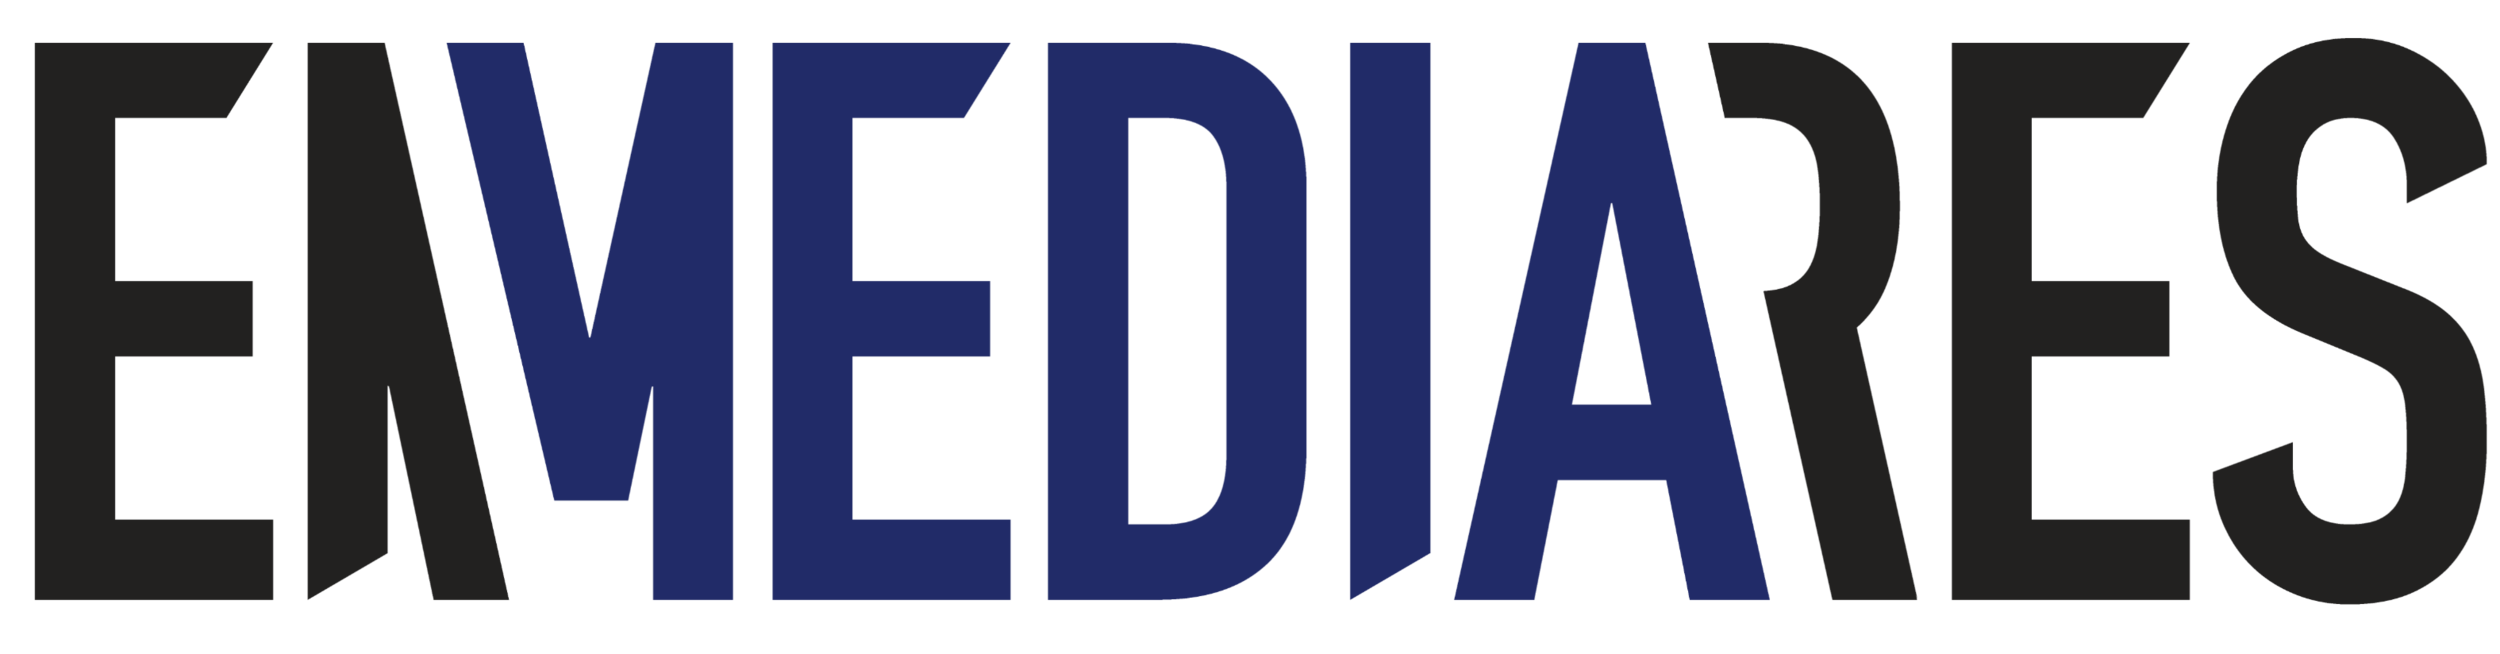 CROPPEDEnMediaRes_Logo_Color.png